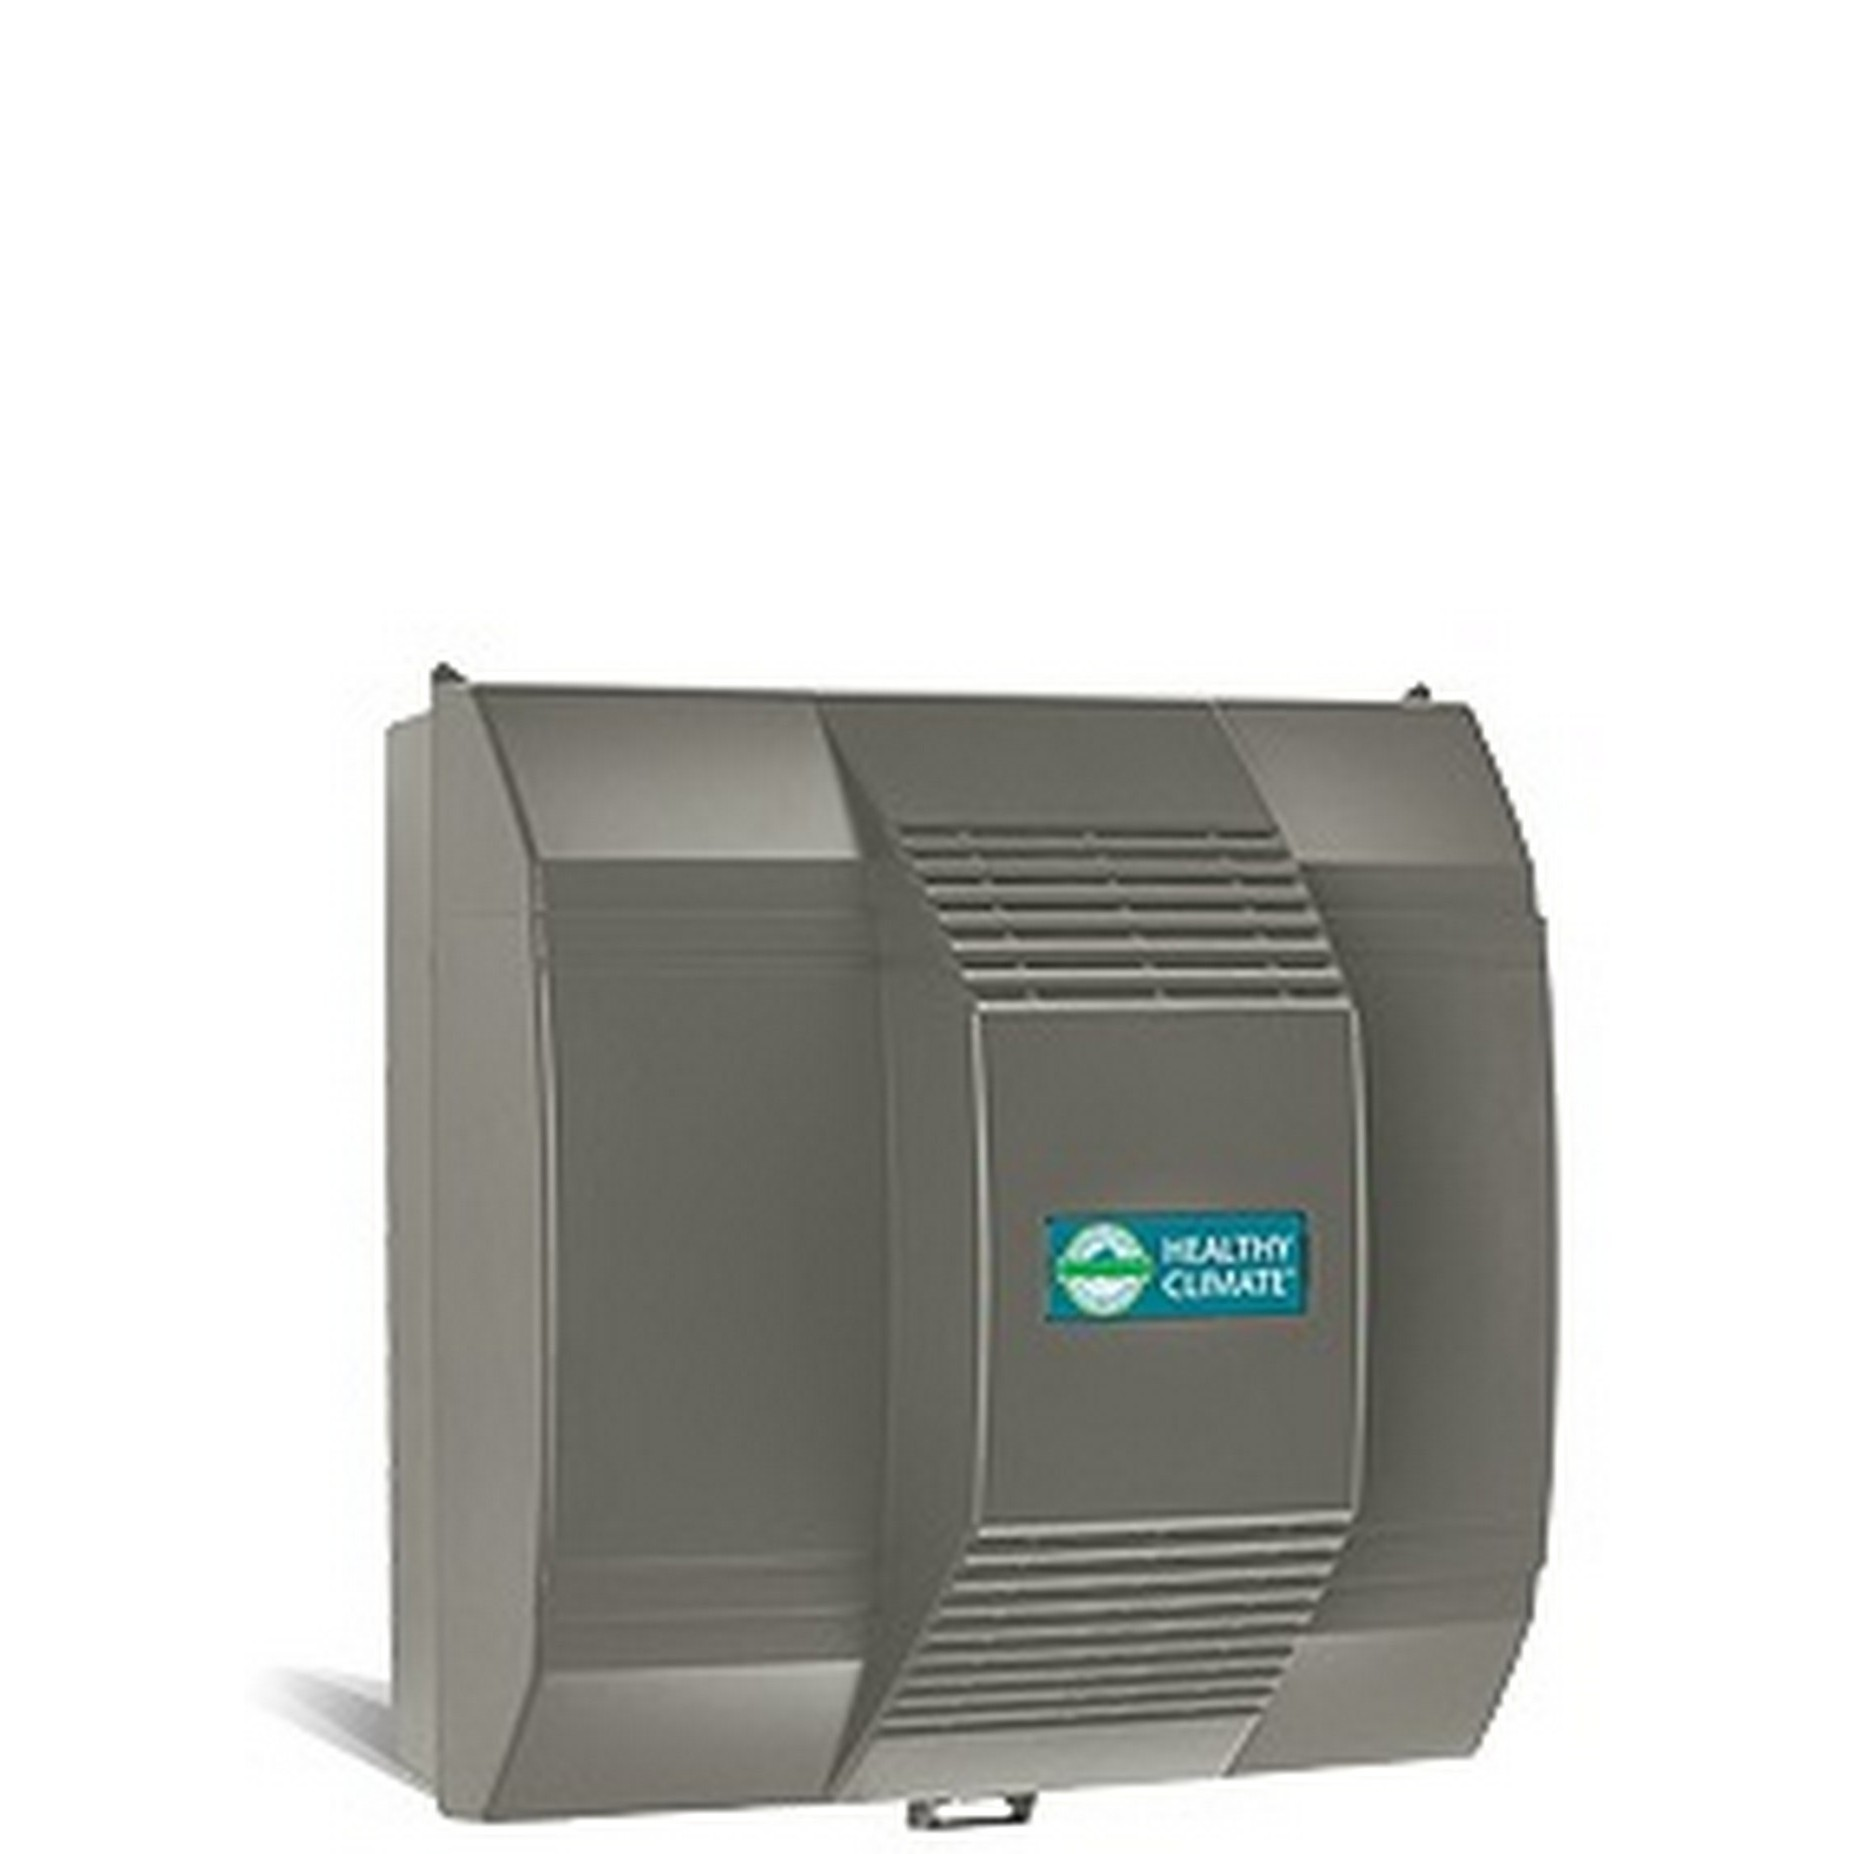 Healthy Climate HCWP3 18M Power Humidifier (Manual Humidistat) eBay #217479